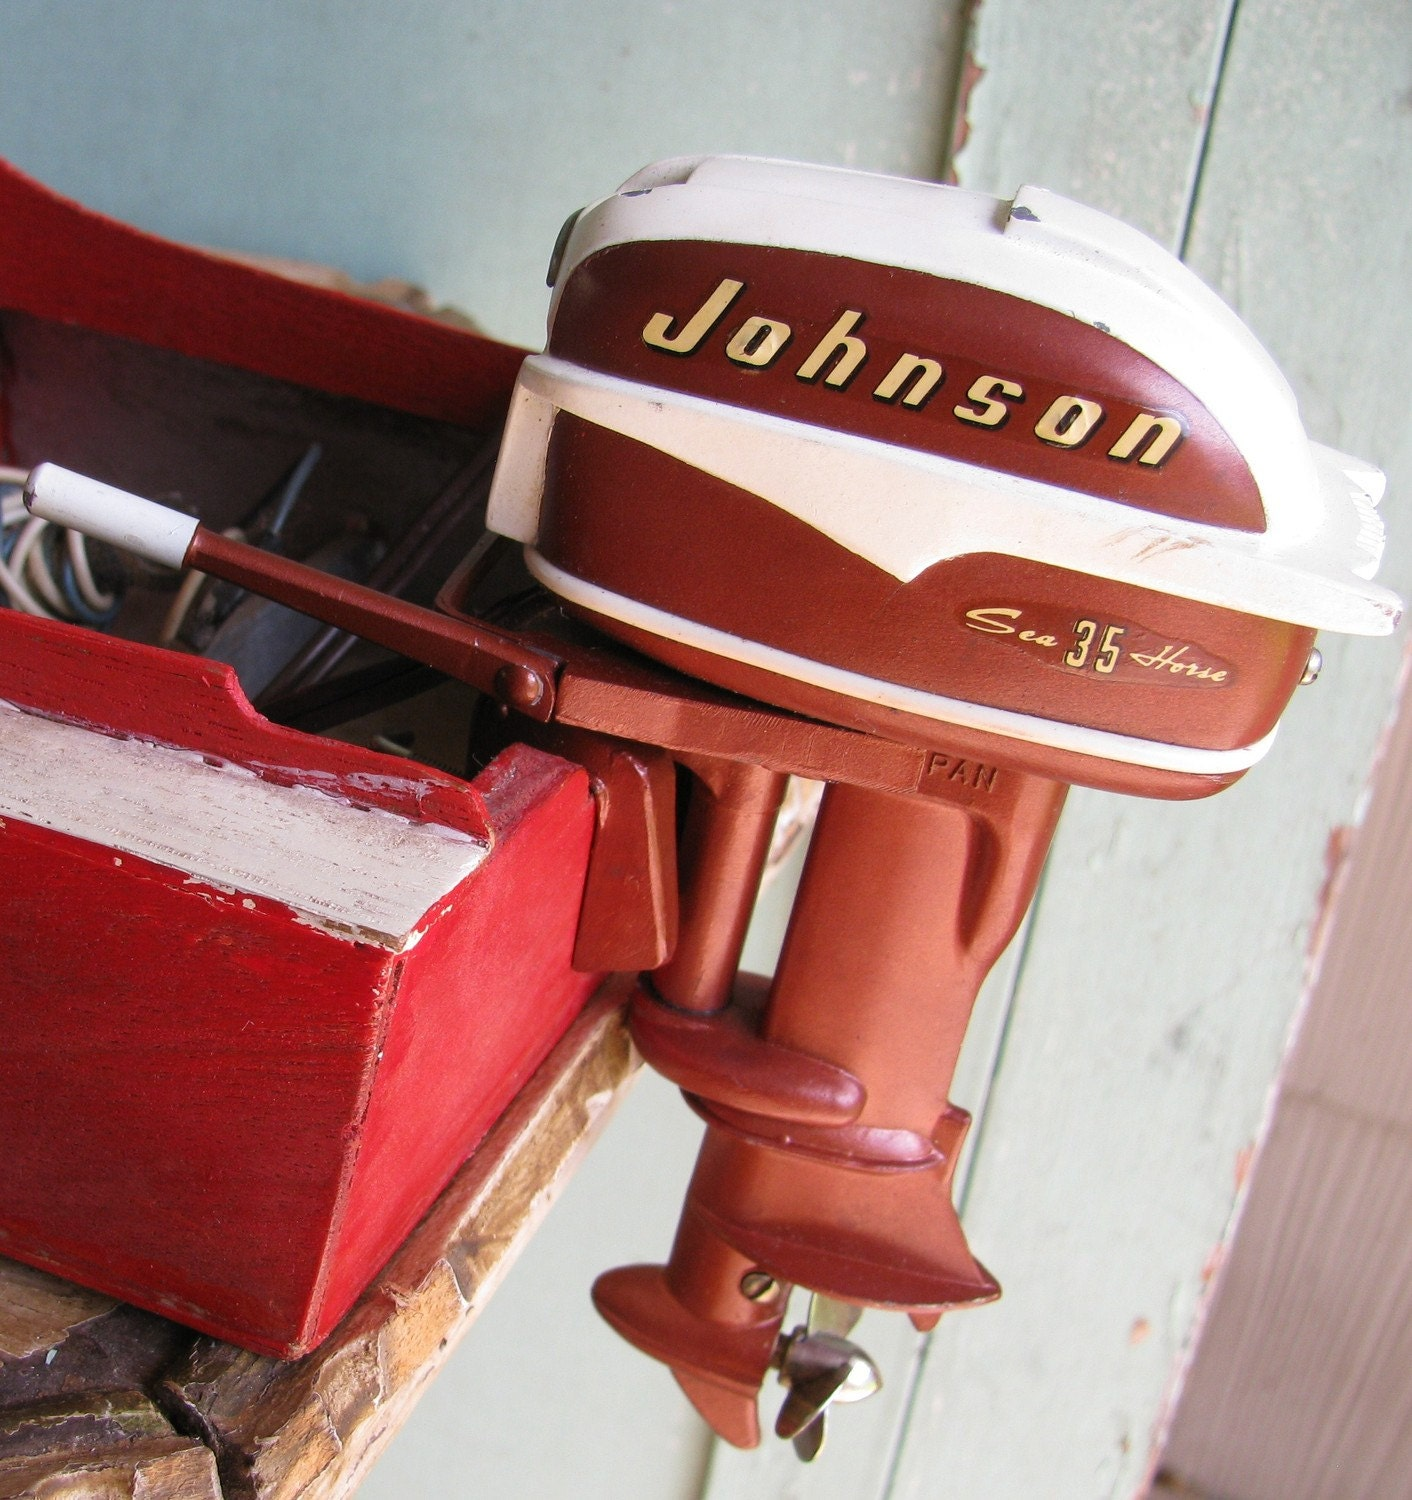 Electric Outboard Motor Kit: Antique 1957 Johnson 35 HP Sea Horse Toy Outboard Motor By K O